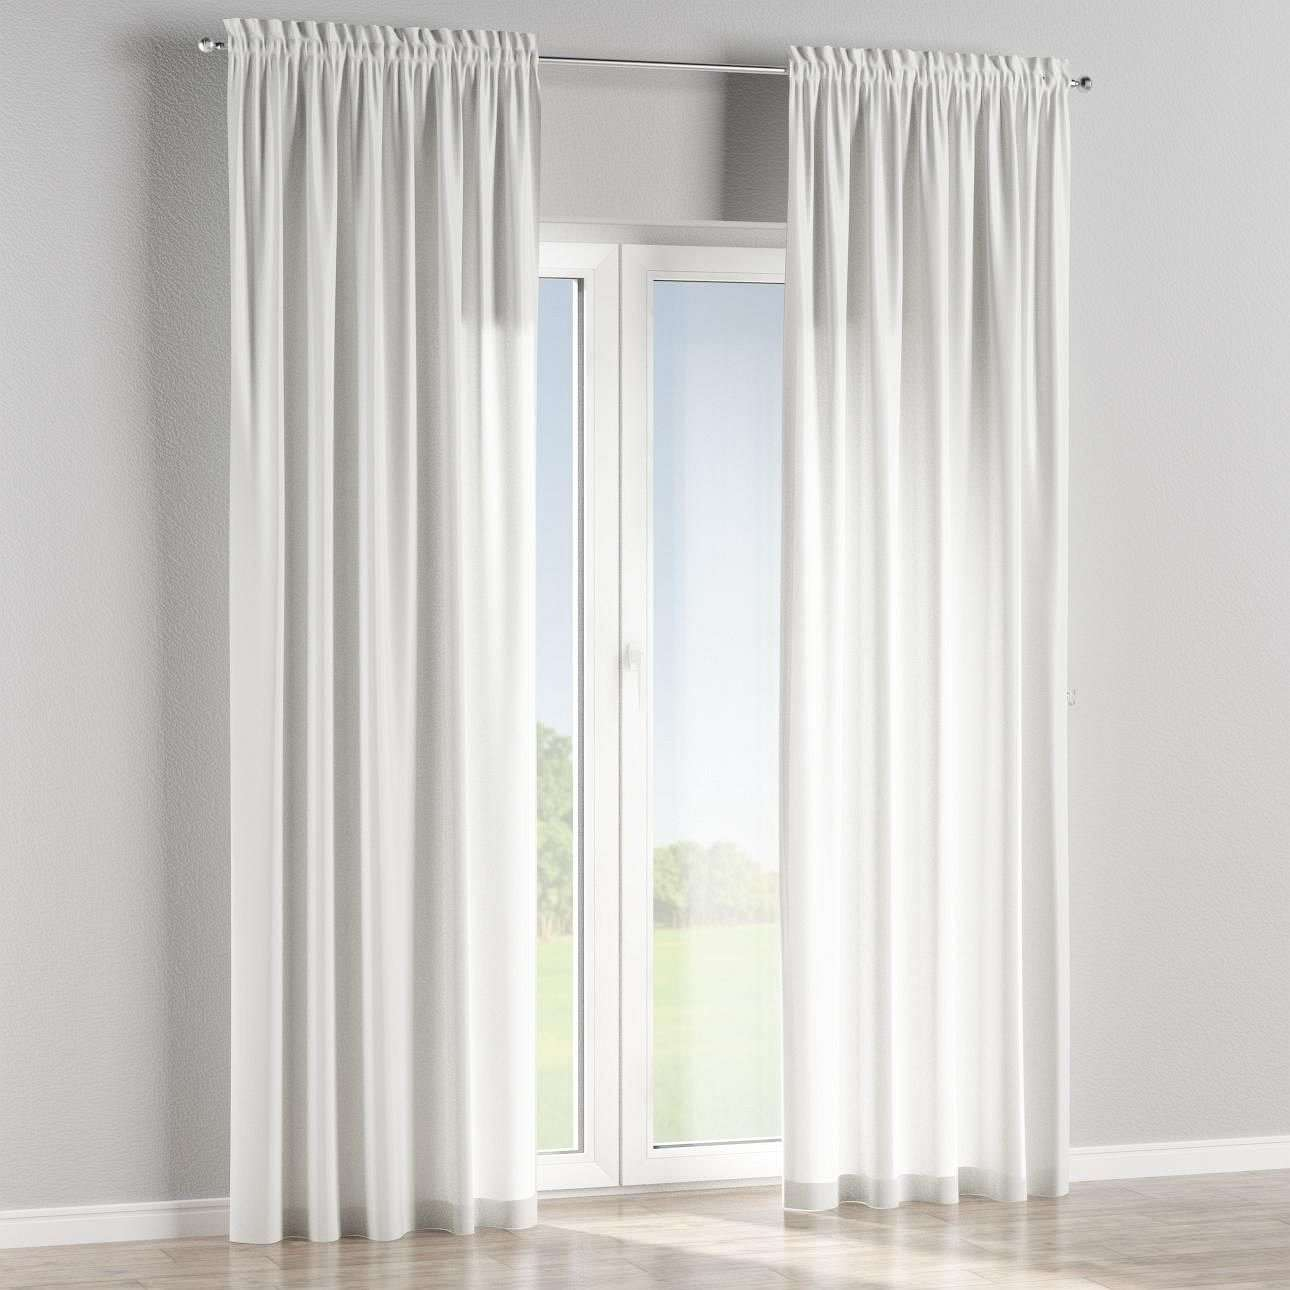 Slot and frill curtains in collection Freestyle, fabric: 629-16